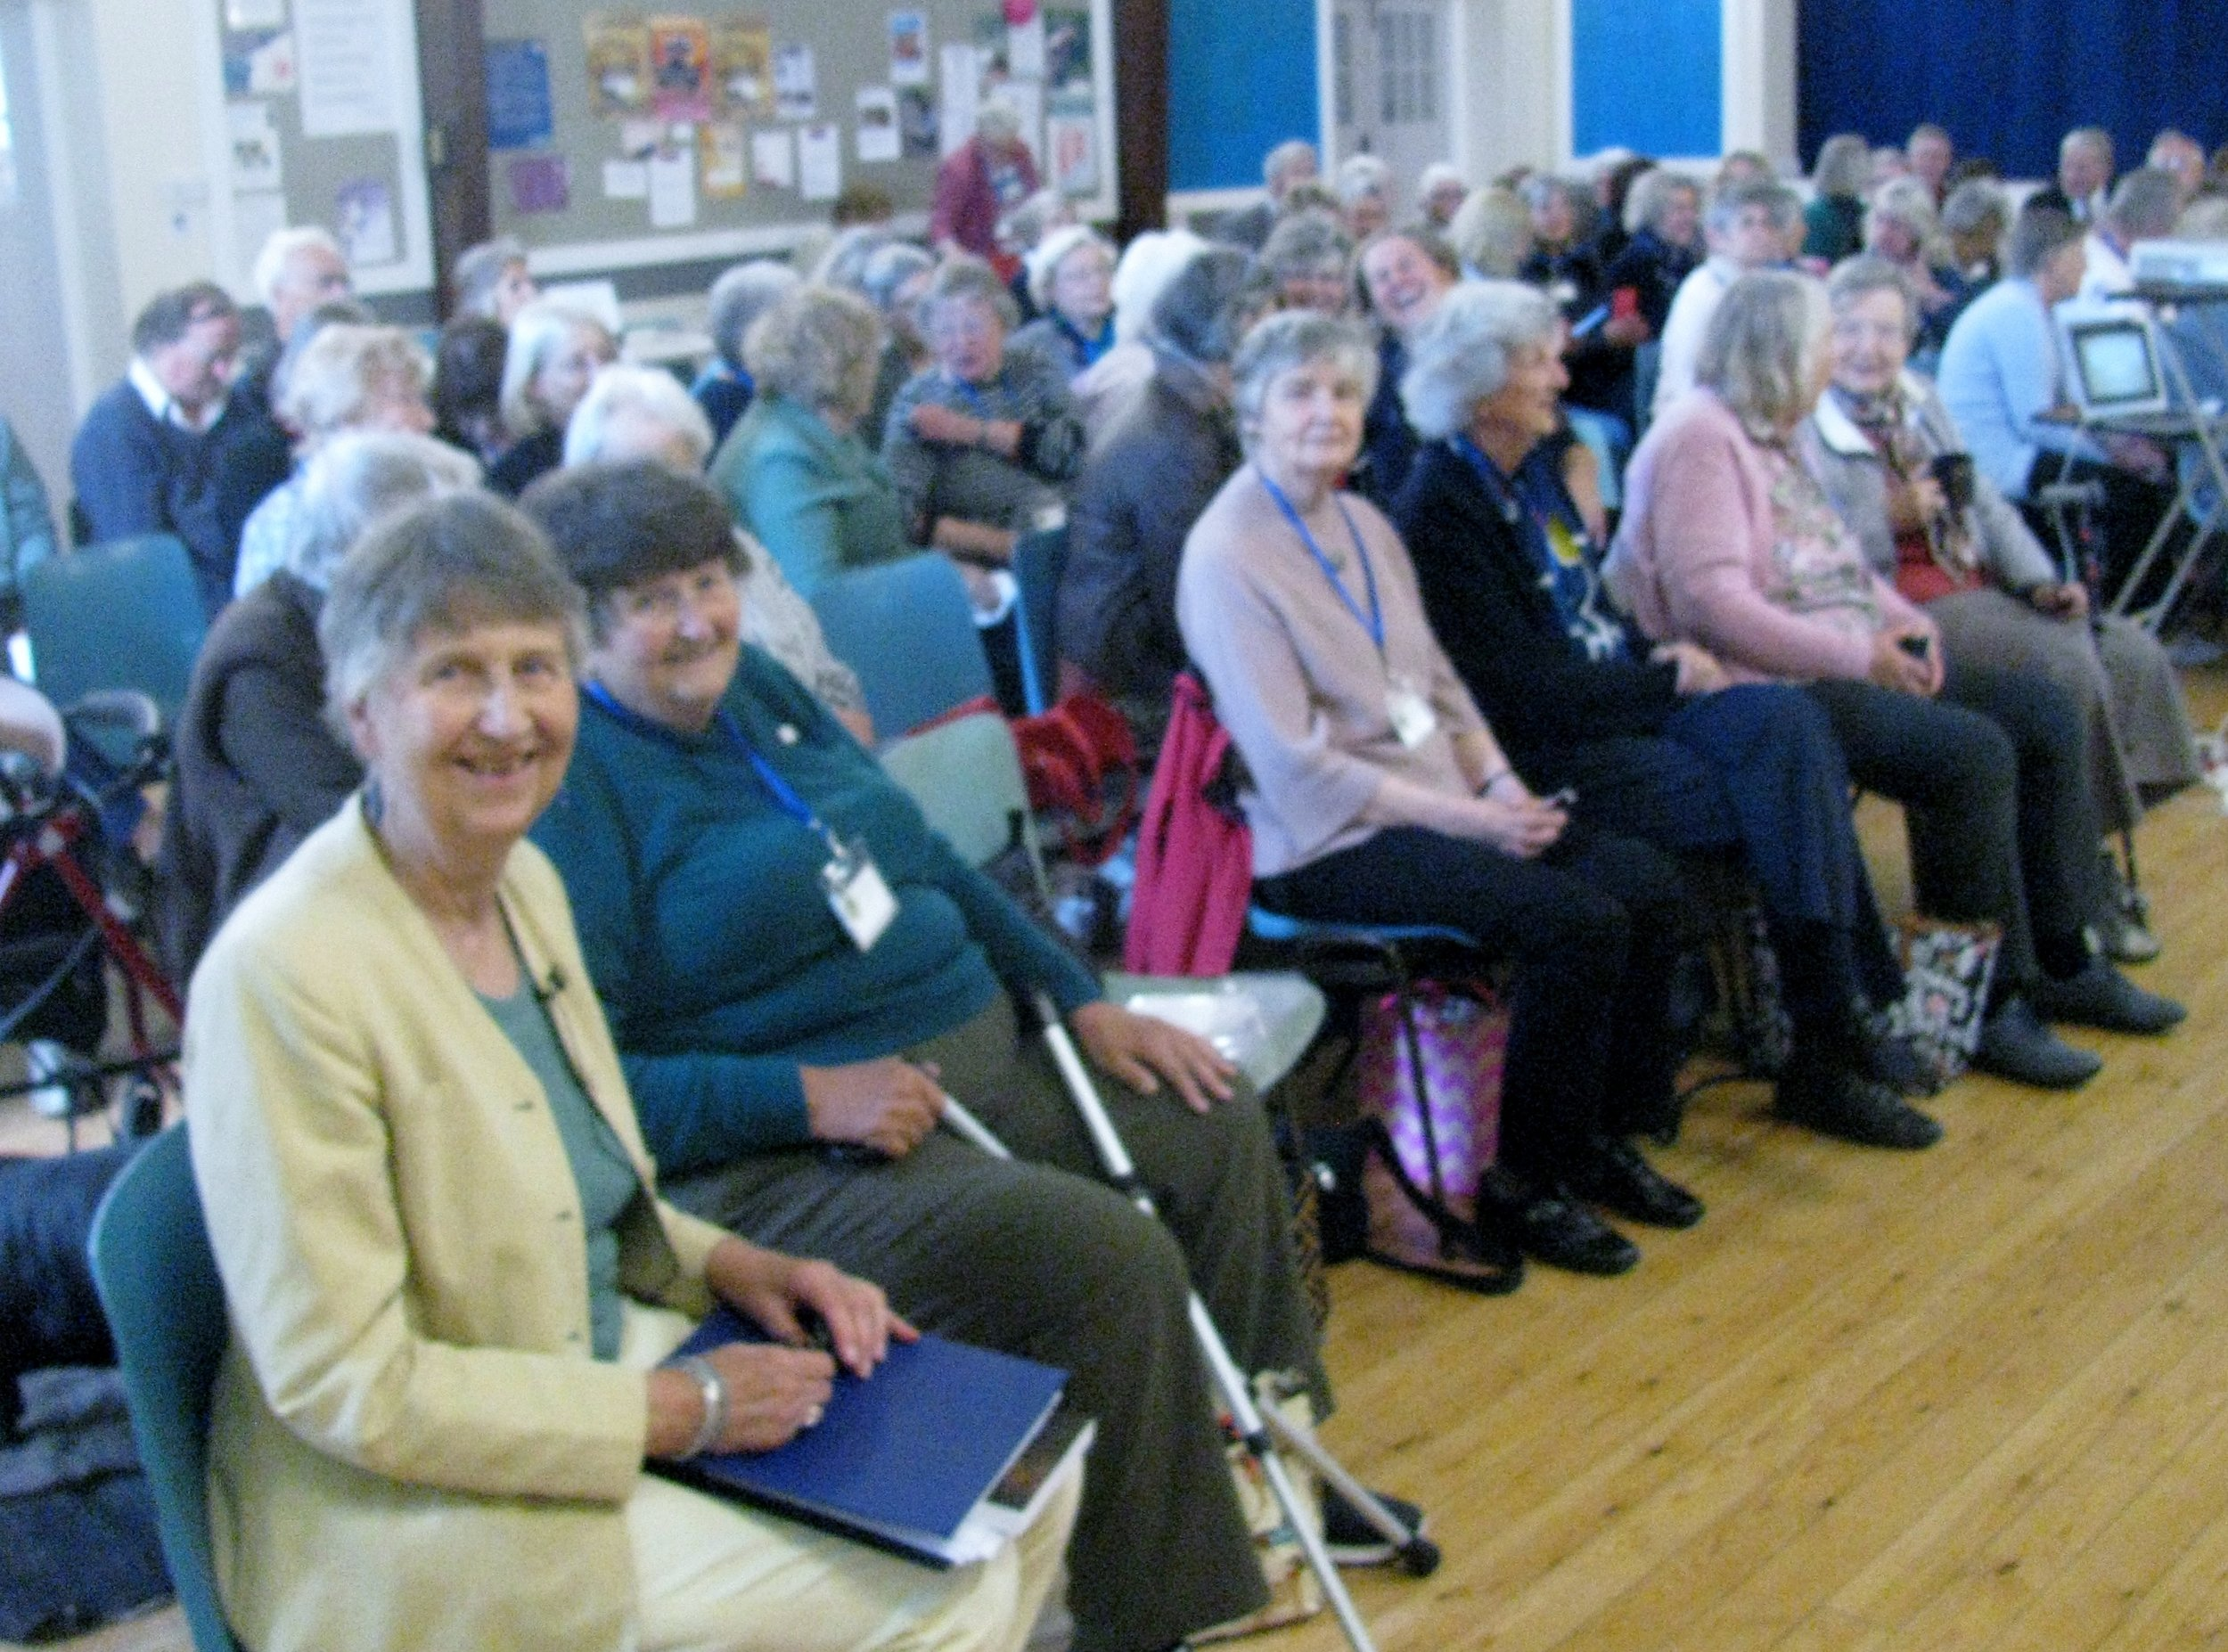 Sheila about to speak in Exeter, UK , 15 June 2019